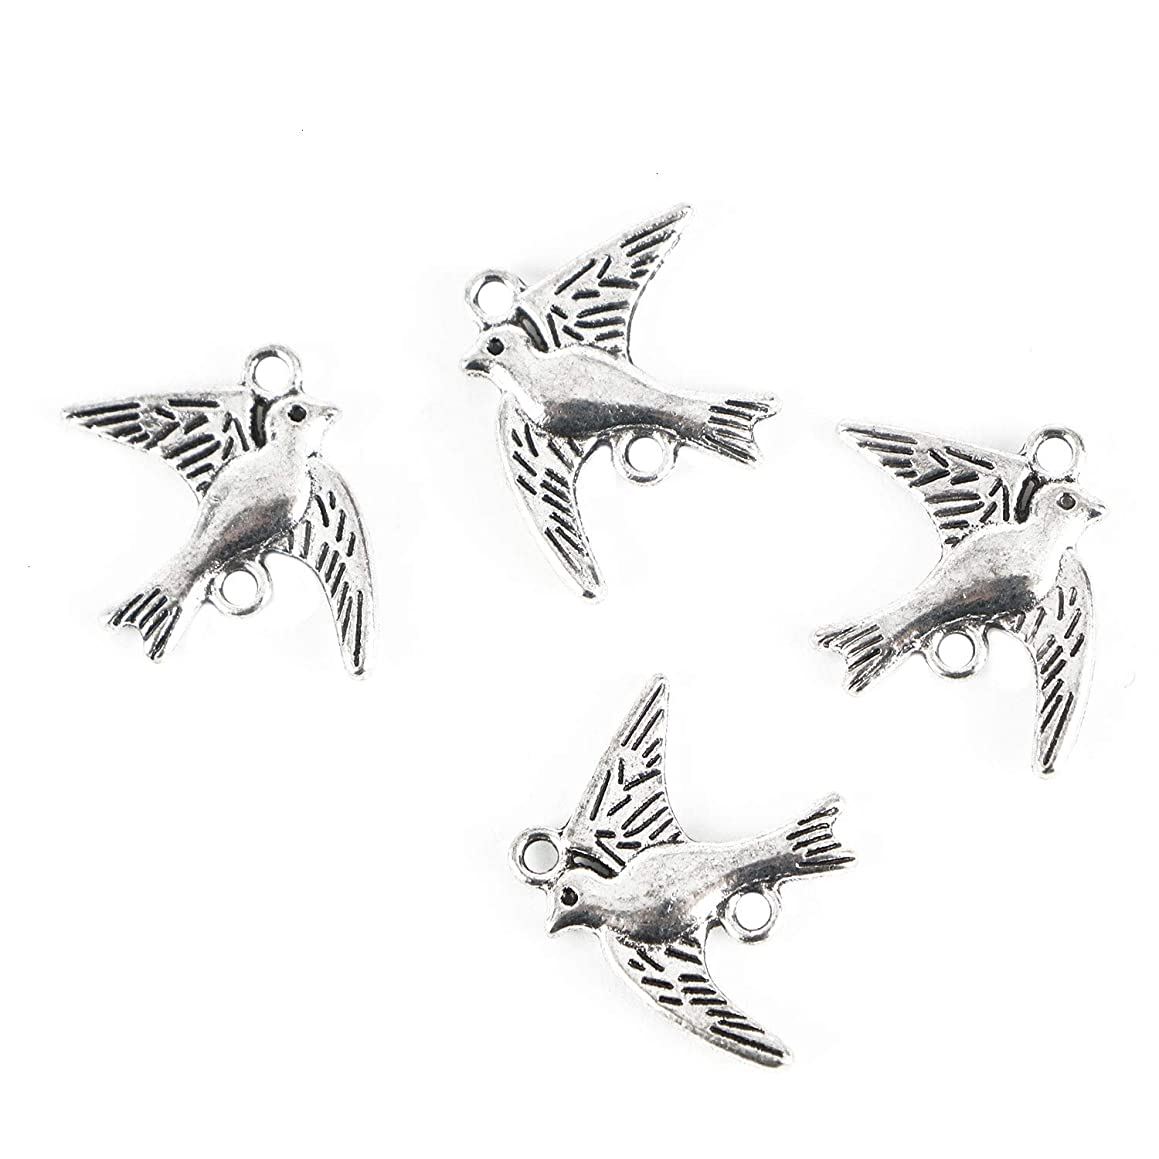 Monrocco 100Pcs Alloy Bird Charms Pendant Jewelry Findings for Jewelry Making Necklace Bracelet DIY,Antique Silver